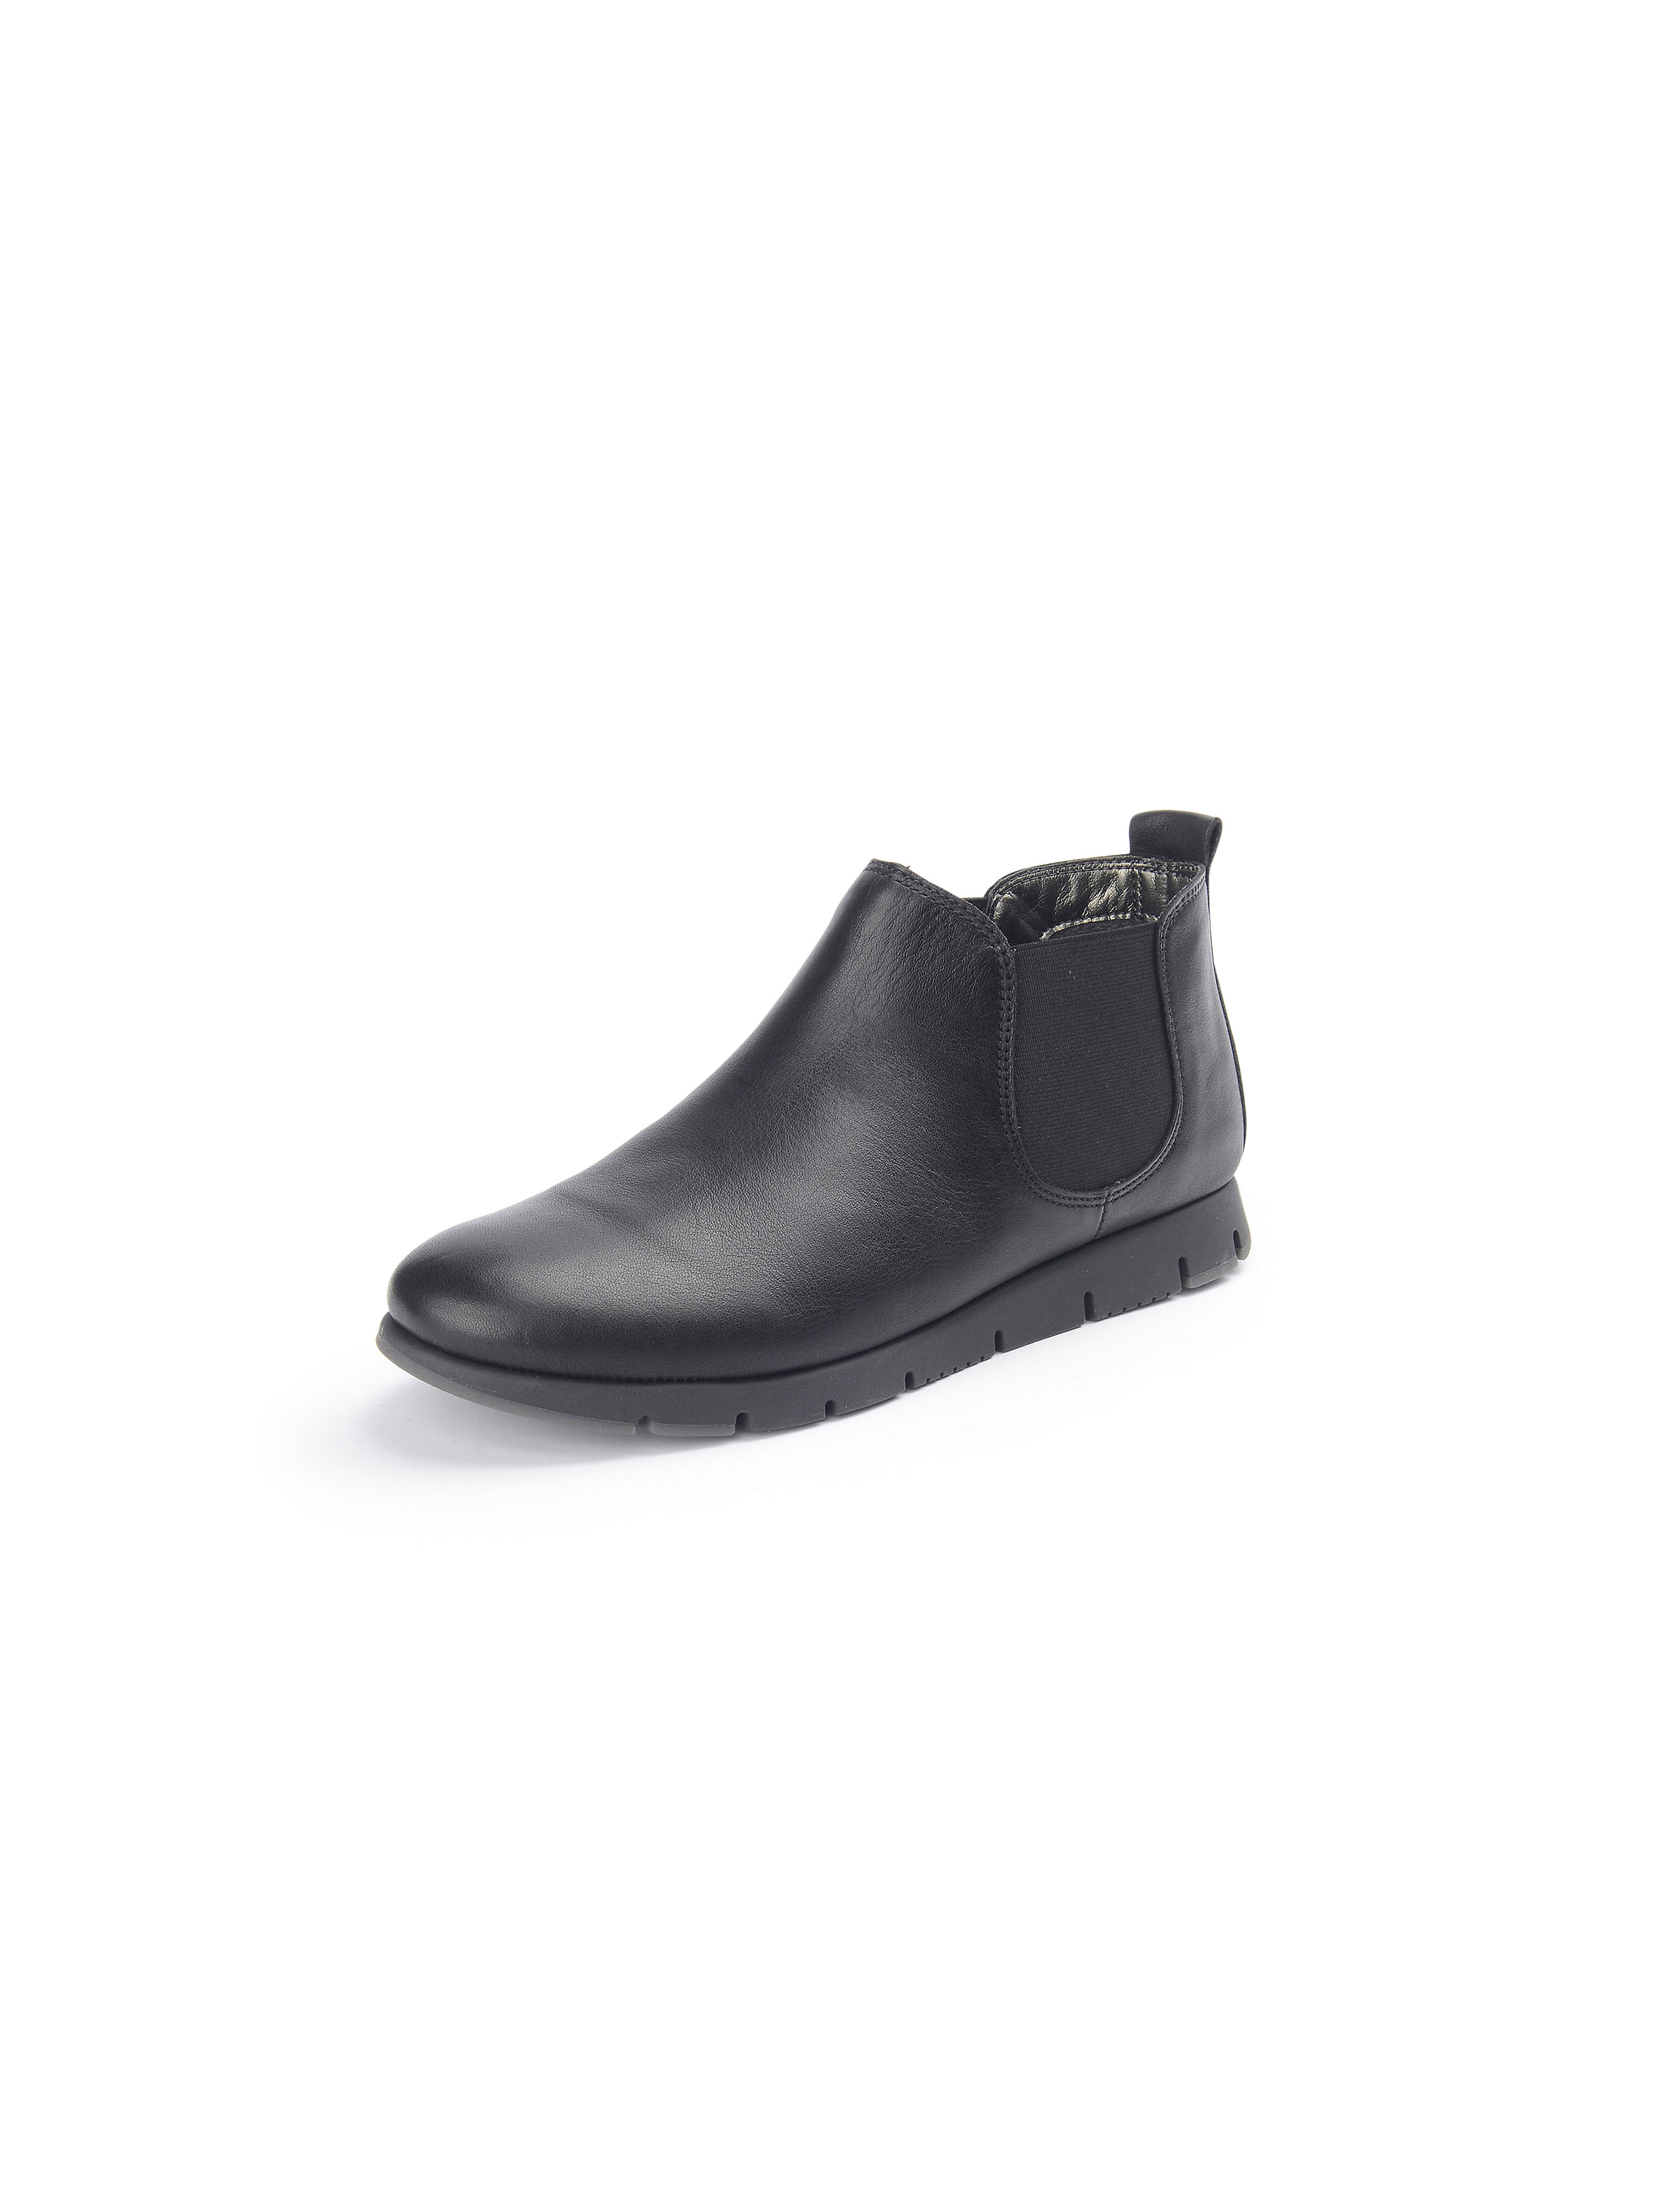 ankle-boots-from-aerosoles-black